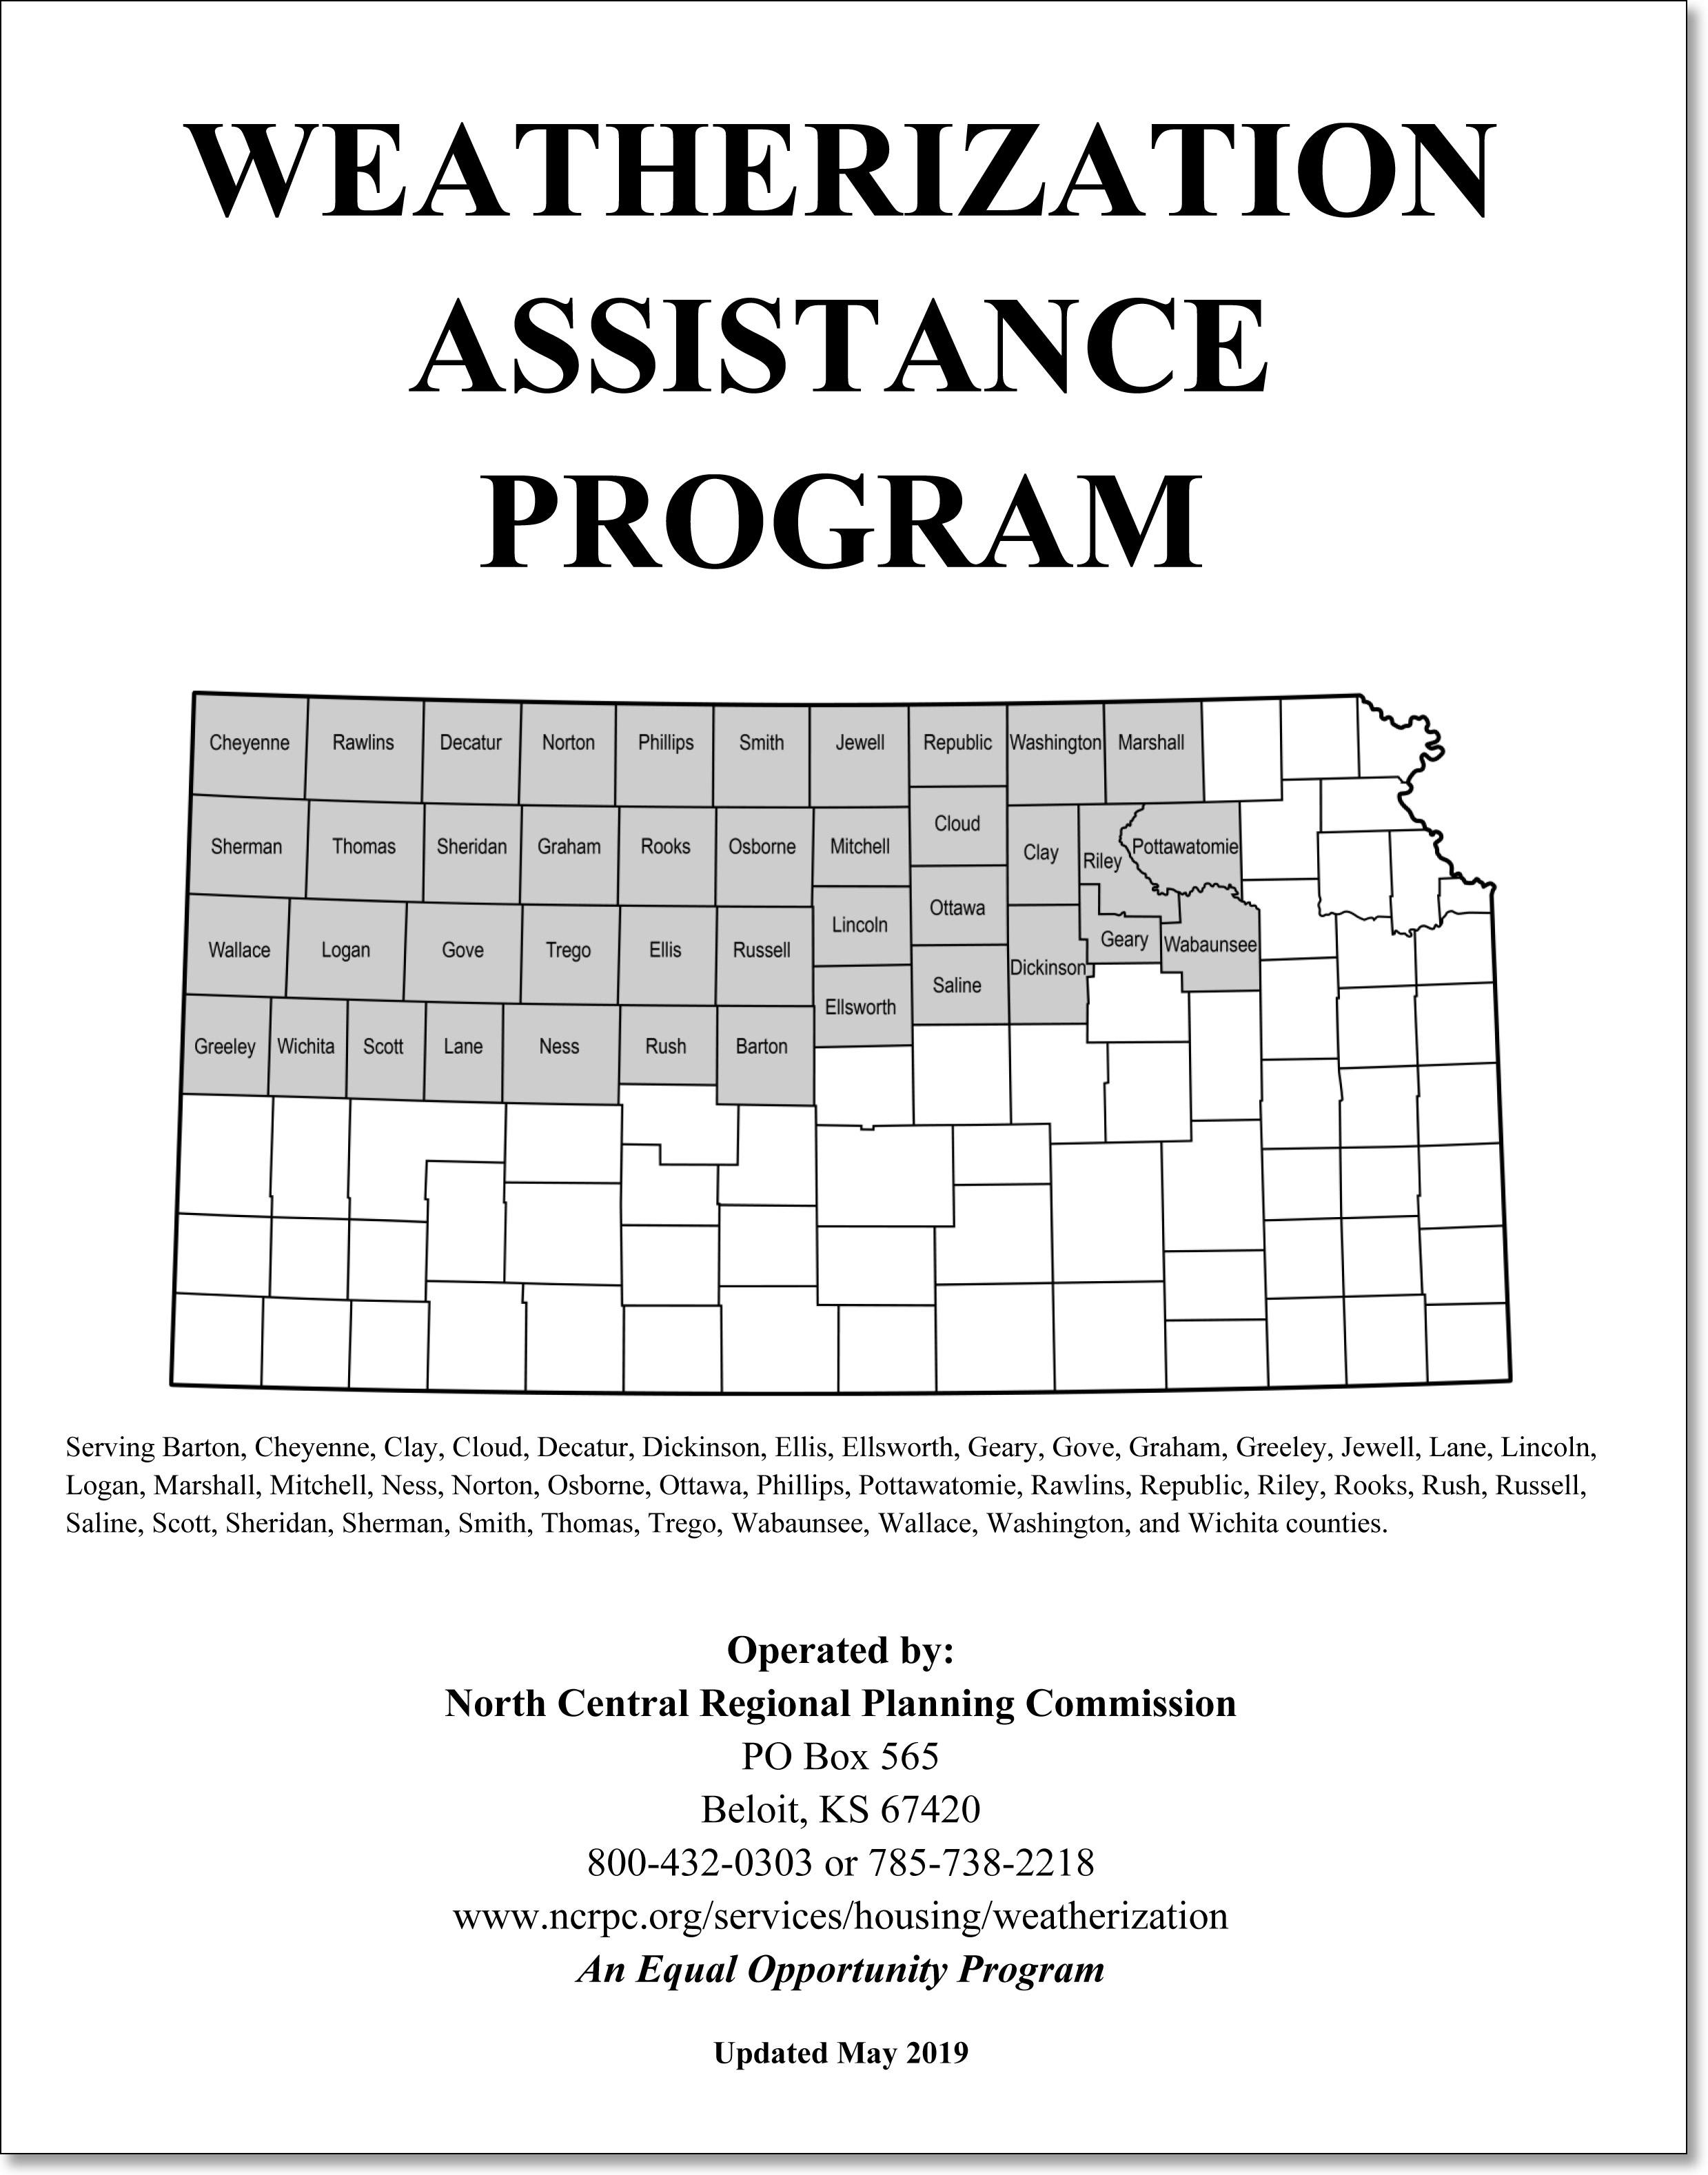 Link to Weatherization Assistance Program Application